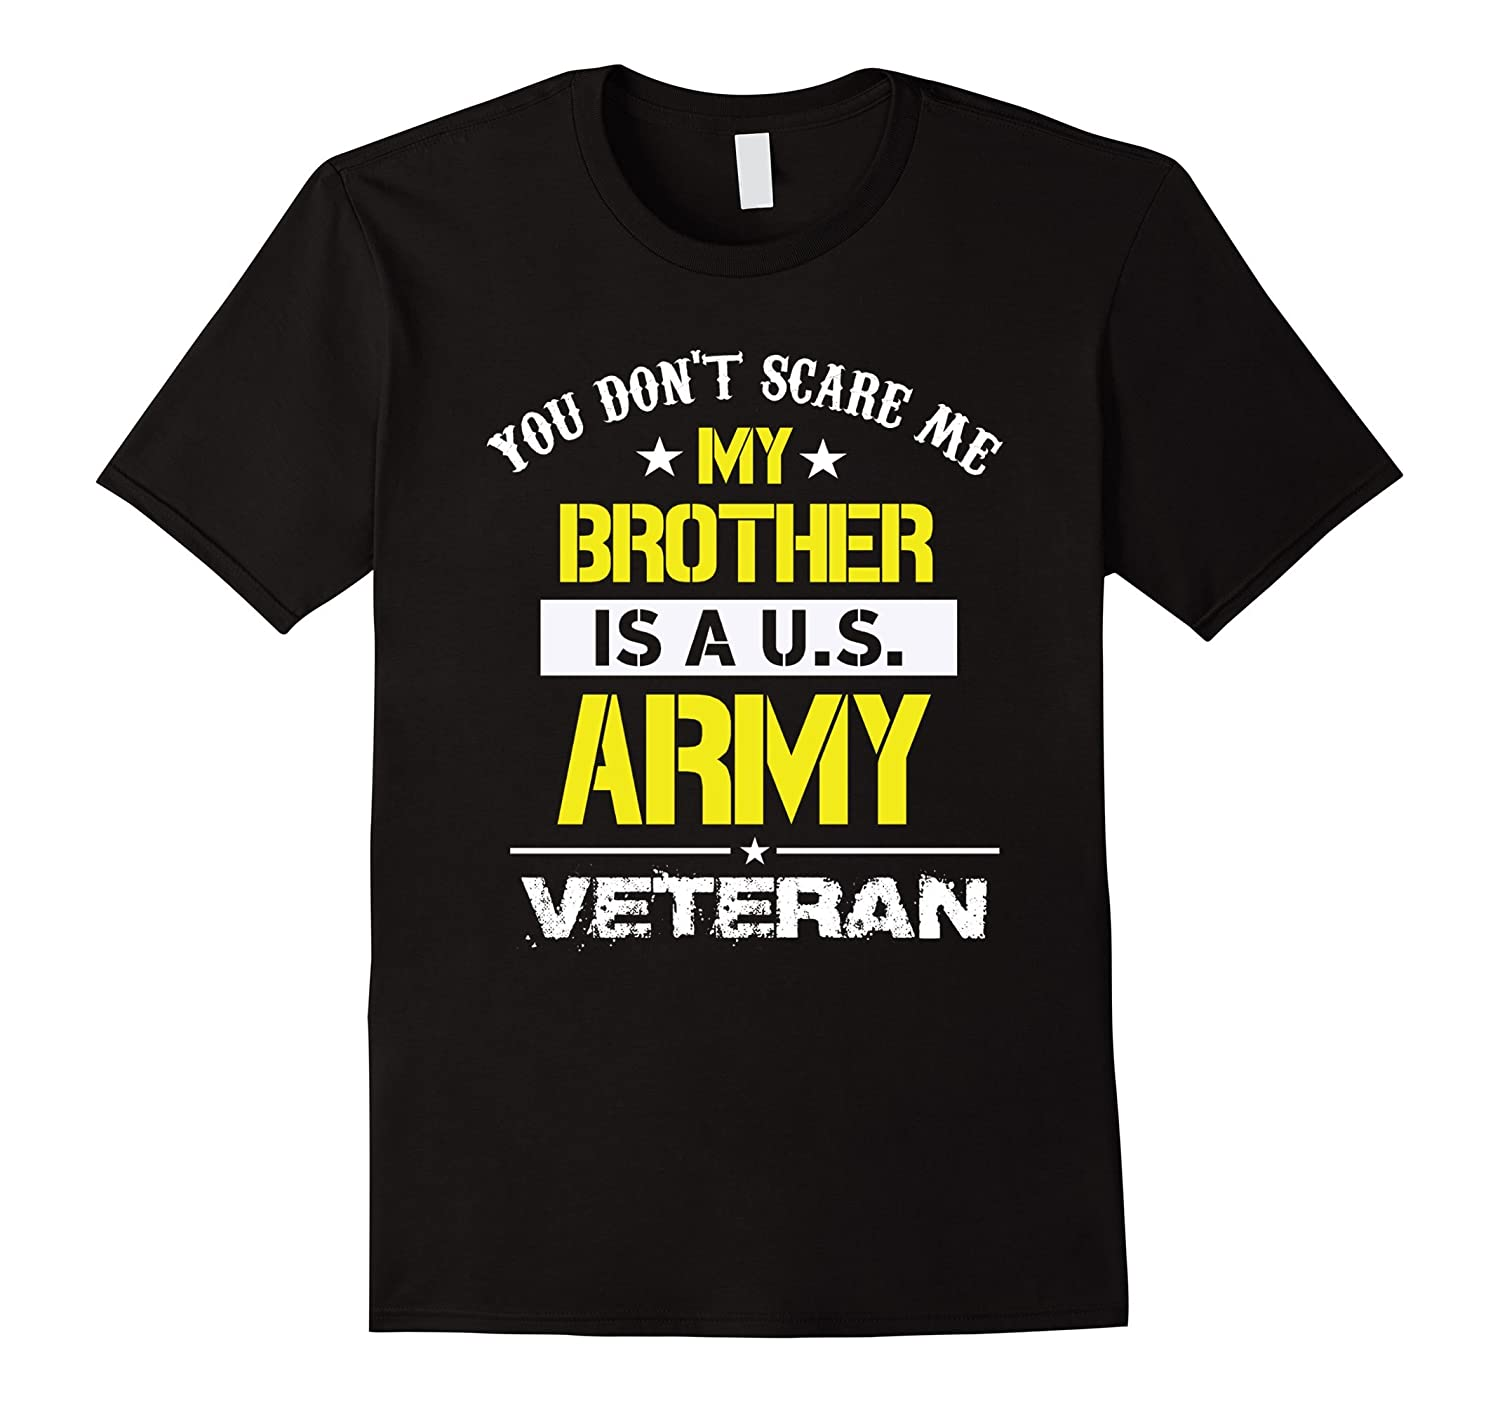 You Don't Scare Me, My Brother is a U.S. Army Veteran-BN